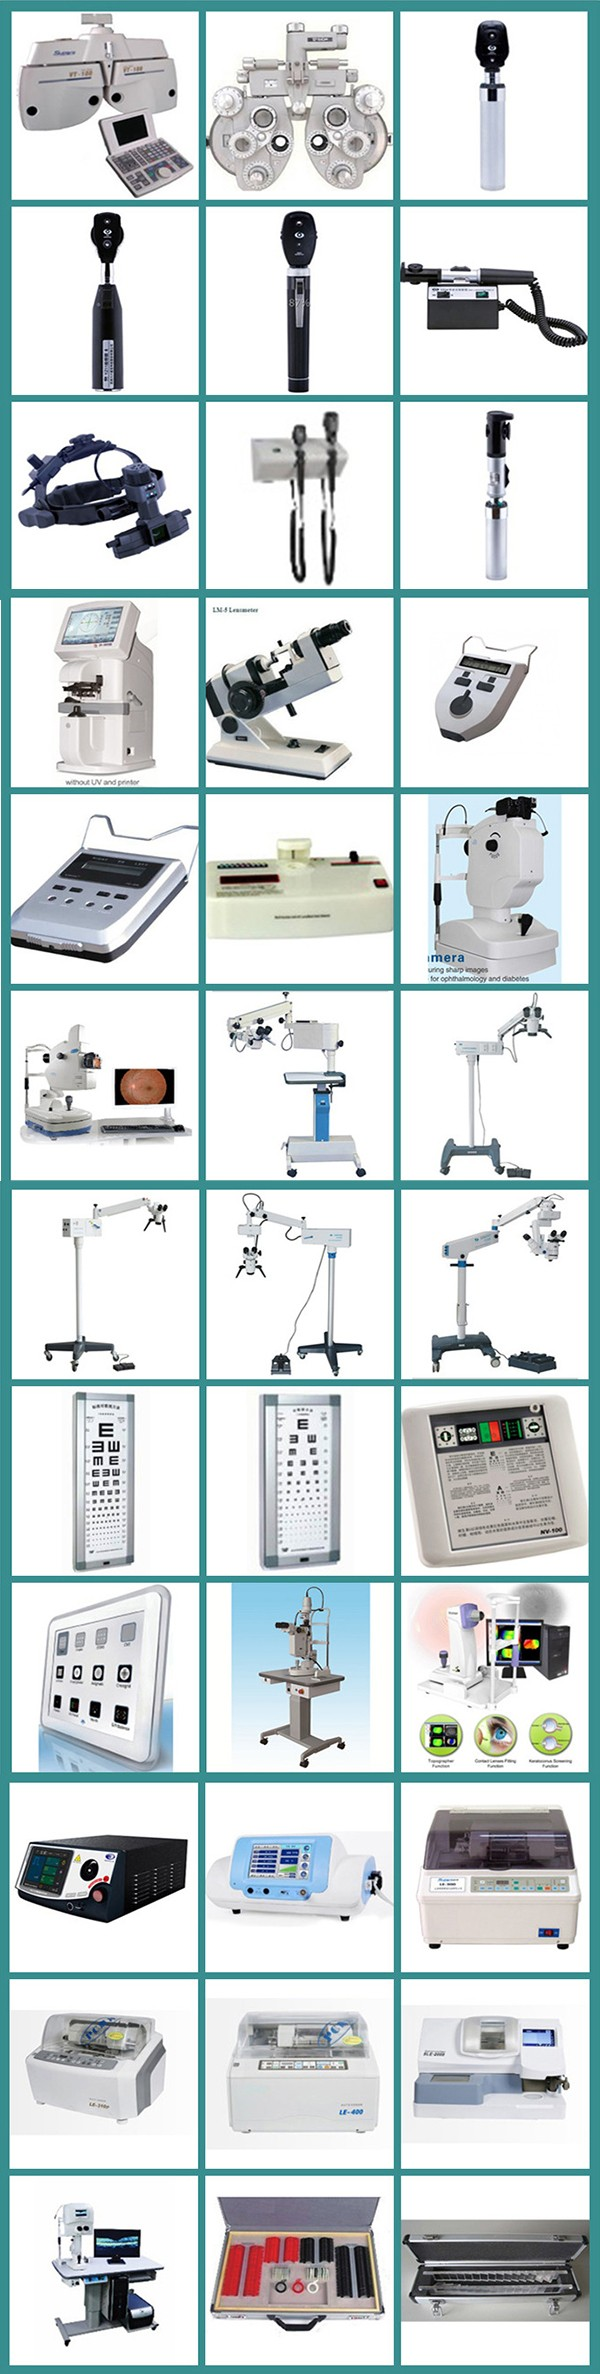 Picture of Ophthalmic Equipment 2.jpg